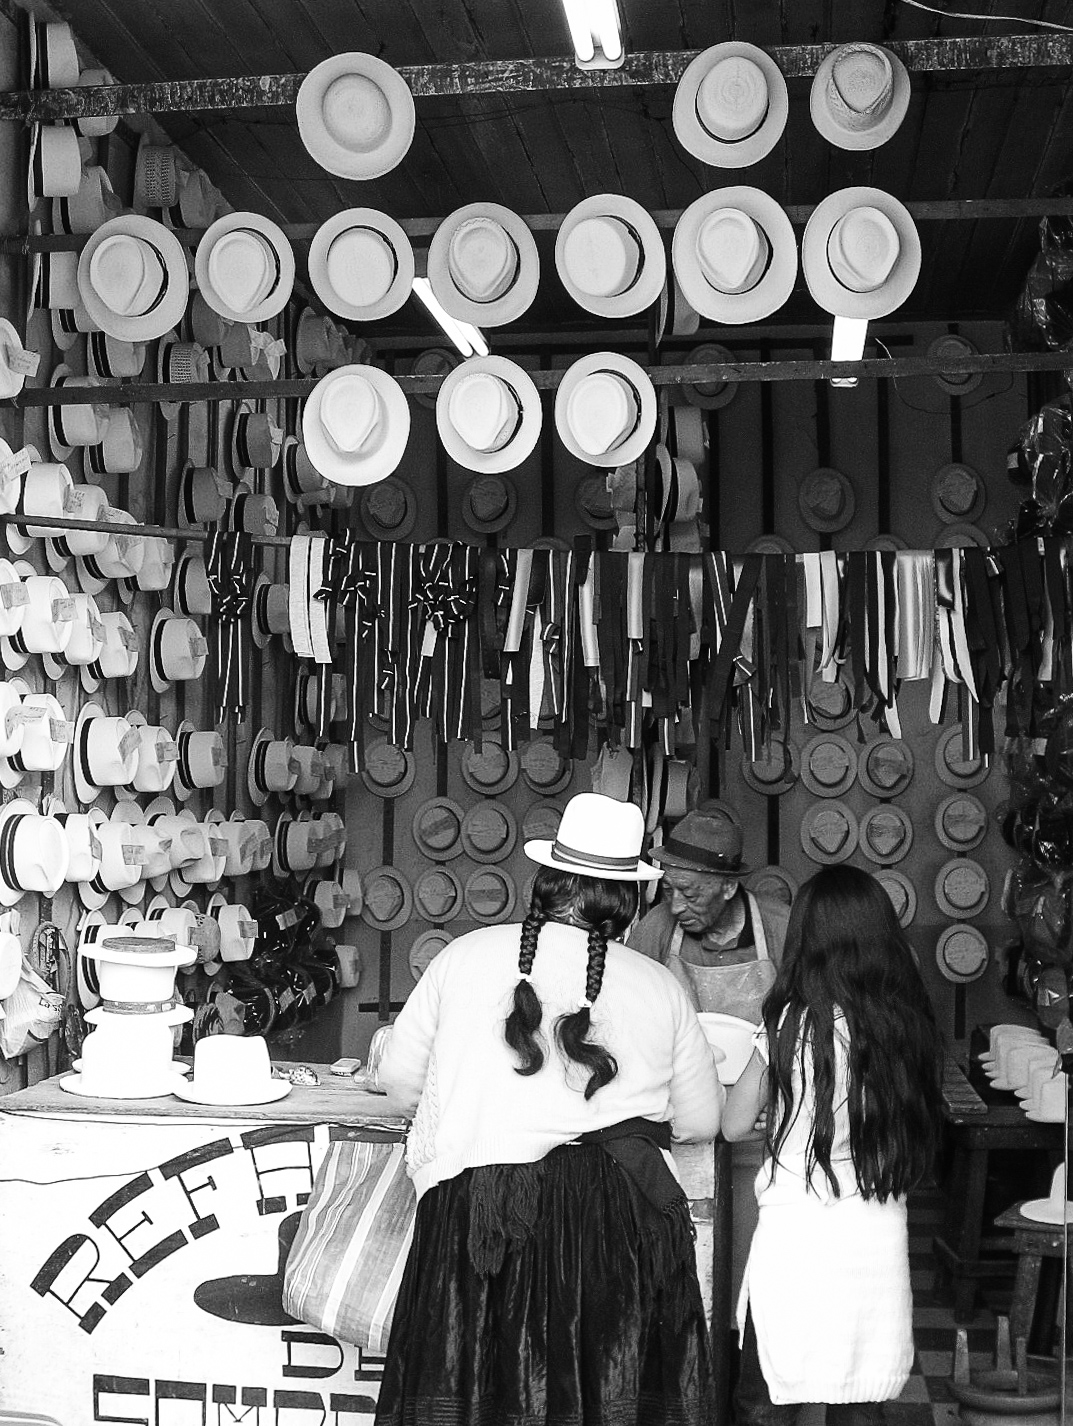 cuenca_river_and_ruins-8279-_peruvian-mother-with-daughter-at-hat-shop.jpg